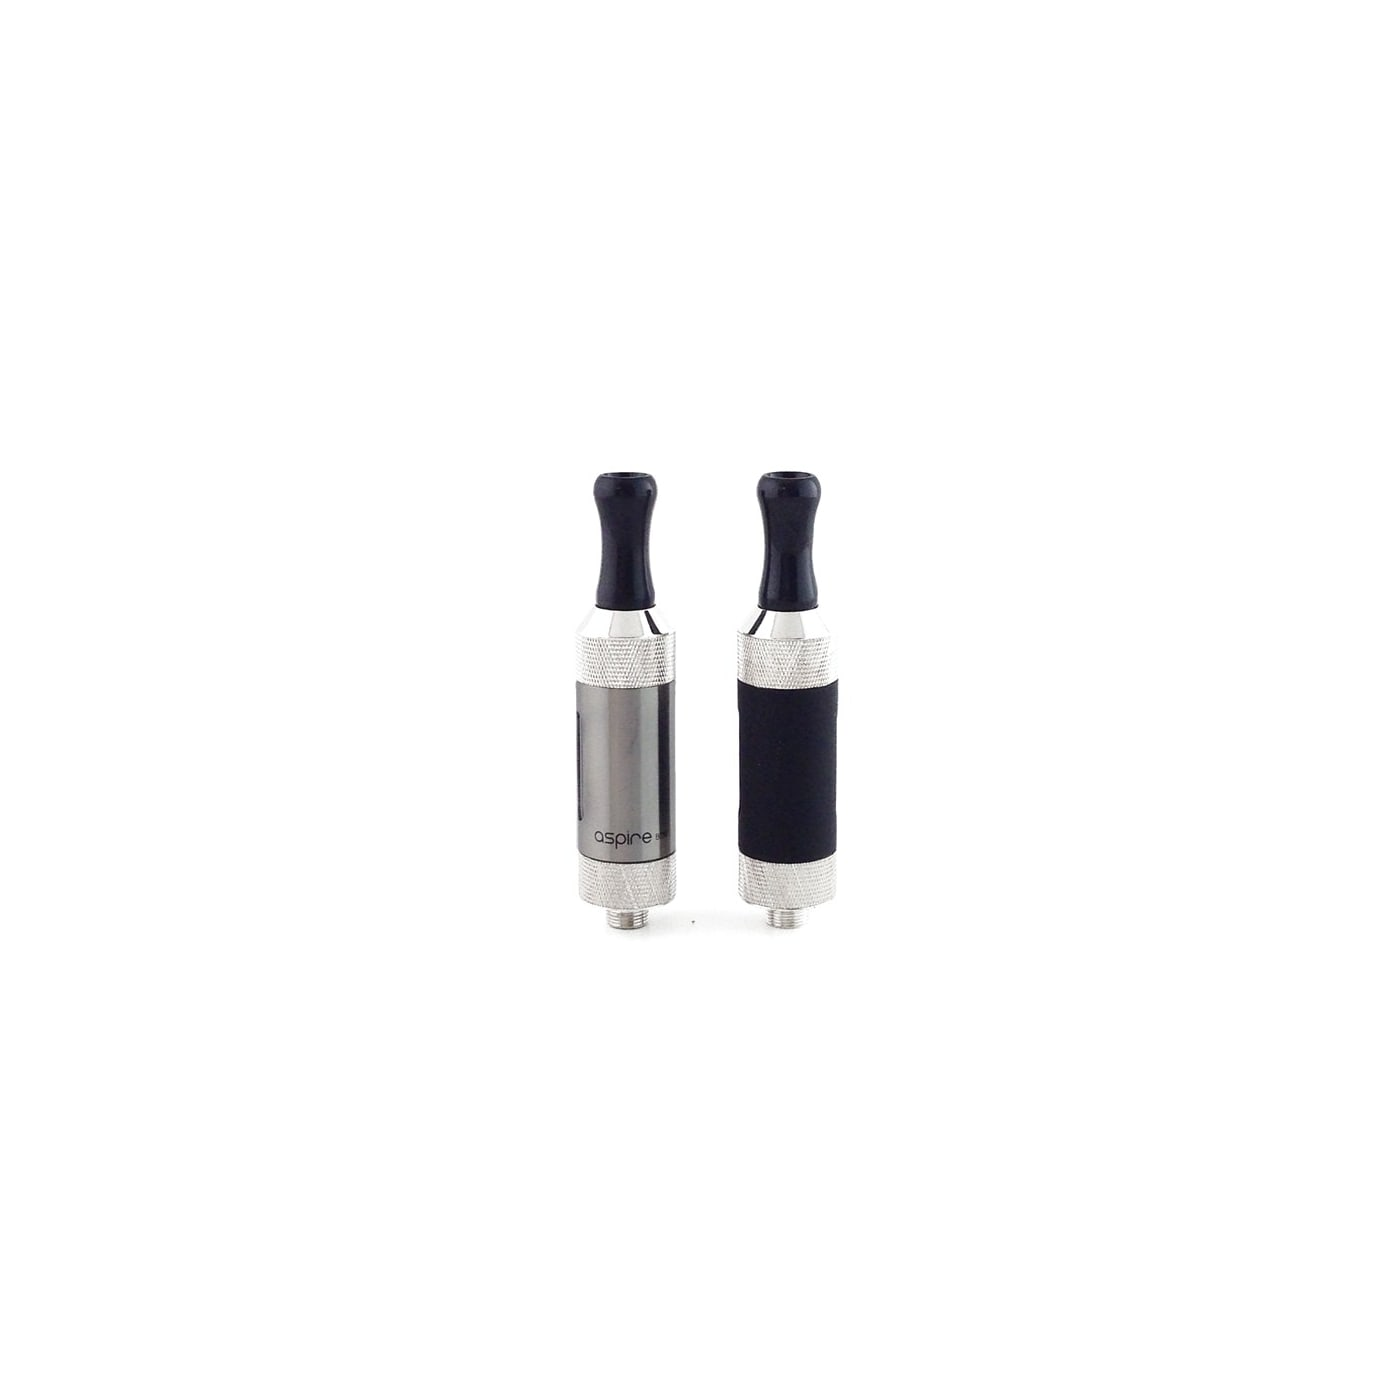 Aspire Mini Vivi Nova-S Glass Clearomizer - 1.8 ohm 2 ml